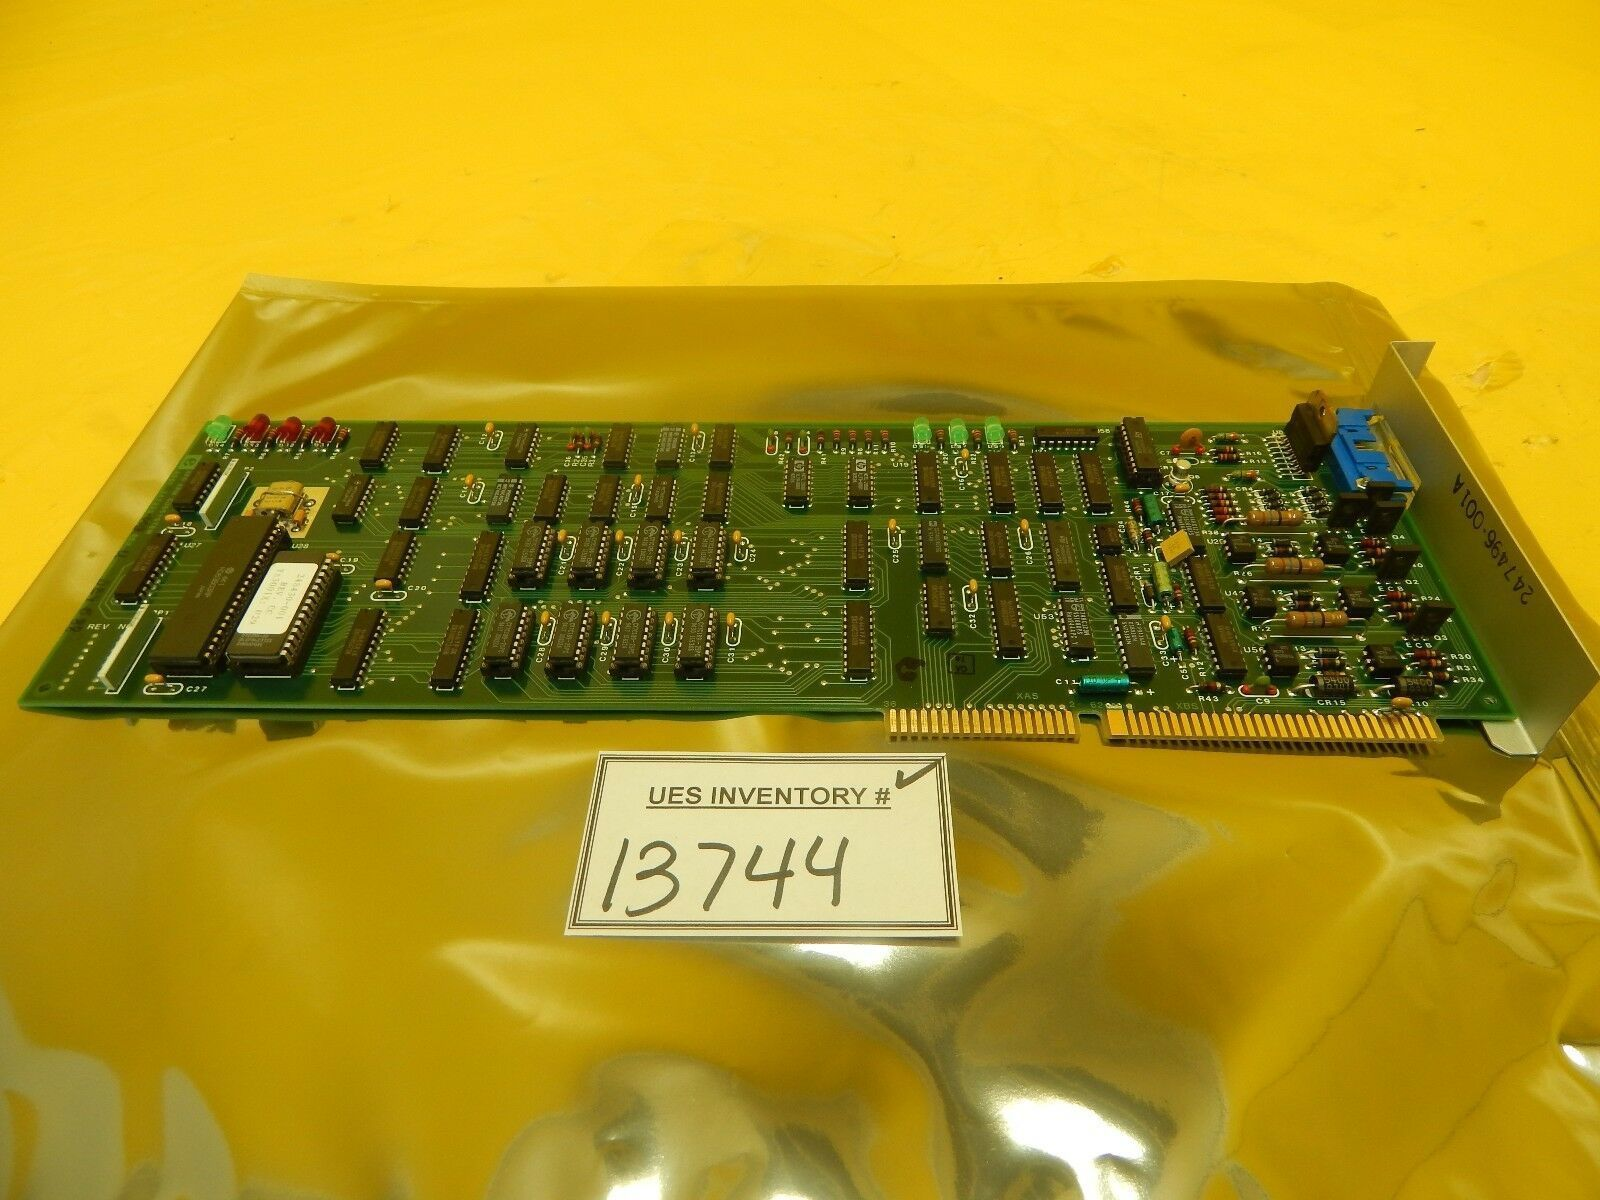 Electroglas 247225-002 XFR Arm Subsystem PCB Card 4085x Horizon PSM Used Working